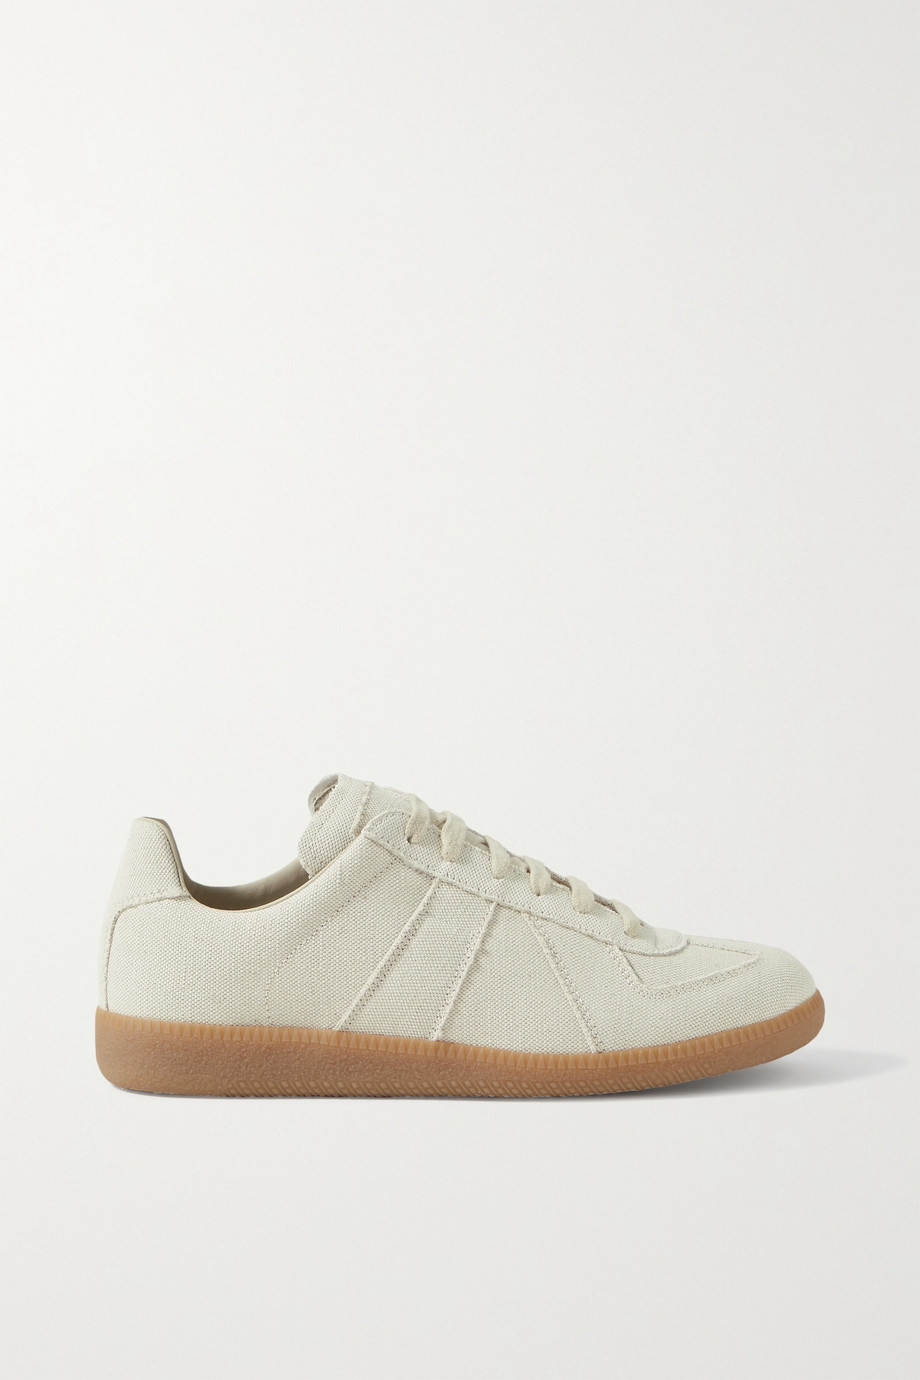 MAISON MARGIELA Replica canvas sneakers